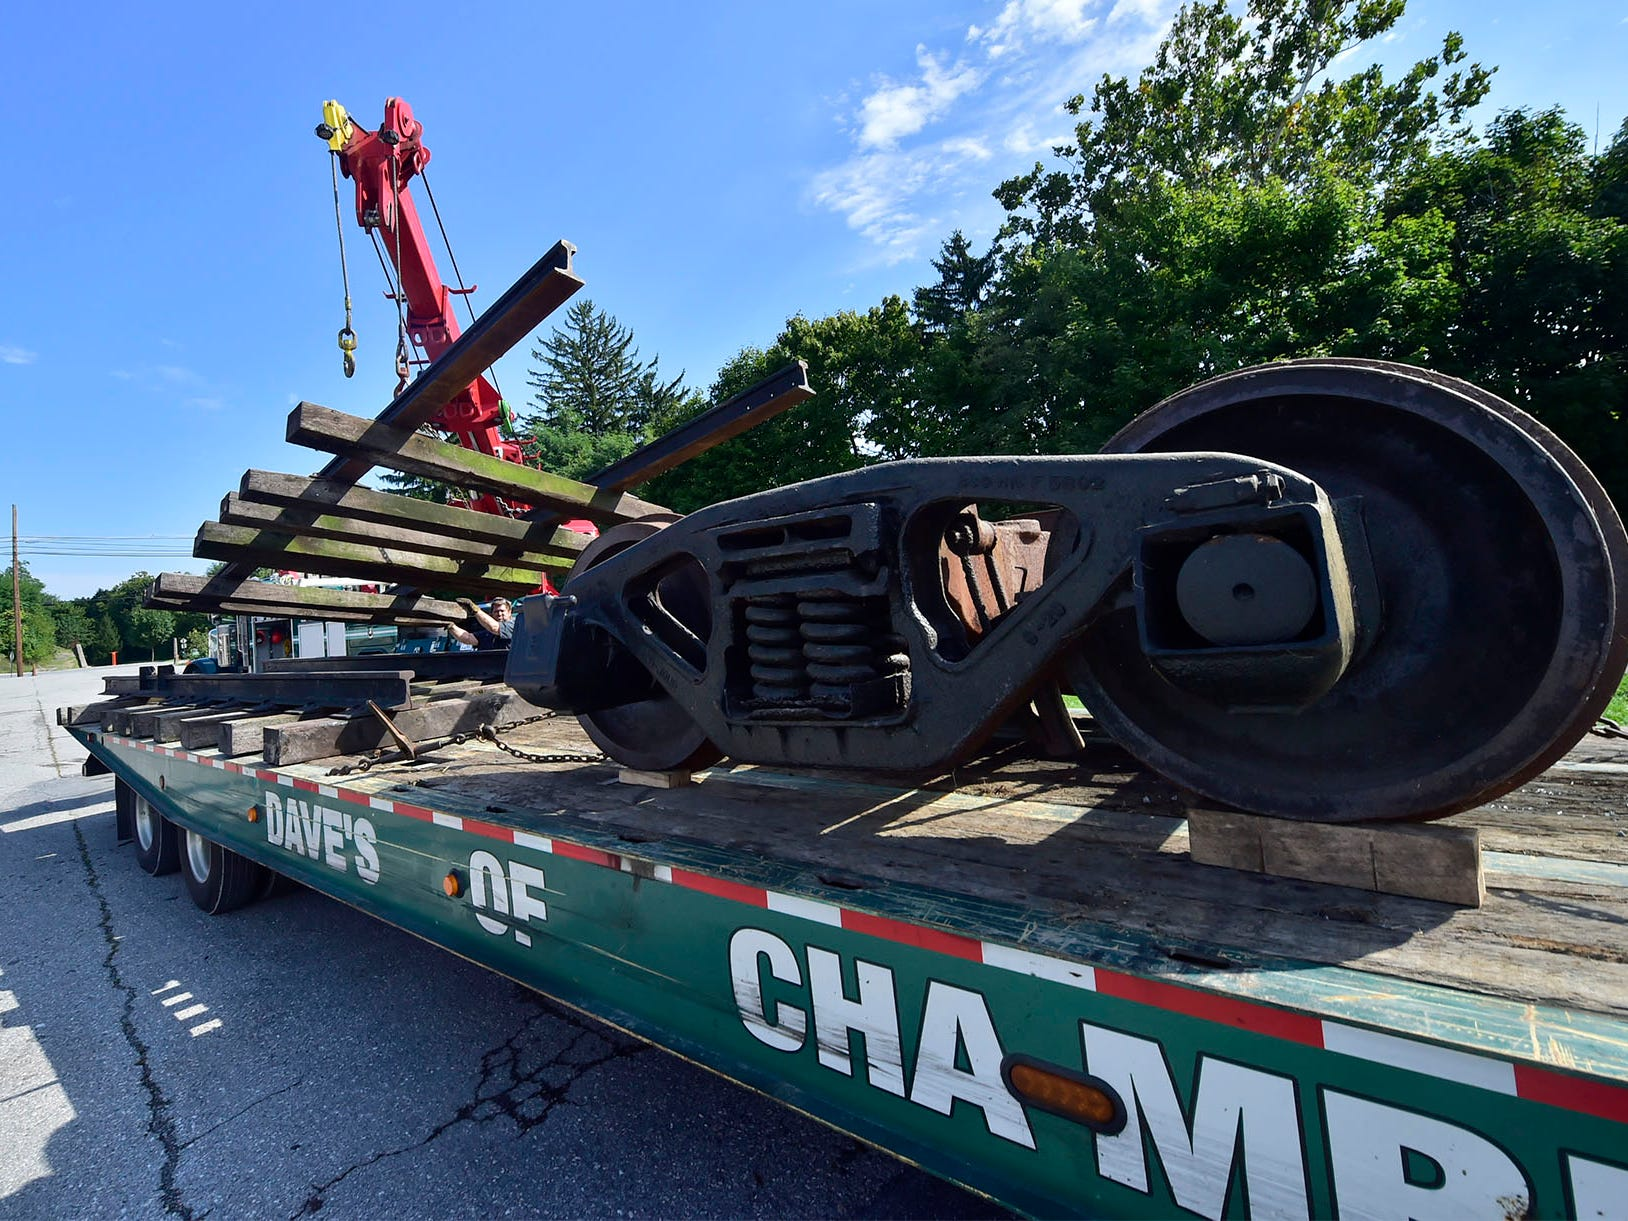 Dave's Trucking workers collect a railroad car on Wednesday, September 19, 2018 to move it to Shippensburg.The 93-year-old railroad car that had a home in the parking lot at Hood and King Street, will be relocated near the steam plant in Shippensburg to be part of a museum highlighting the history of Shippensburg University's use of coal.The county has purchased the parking lot for employee parking.